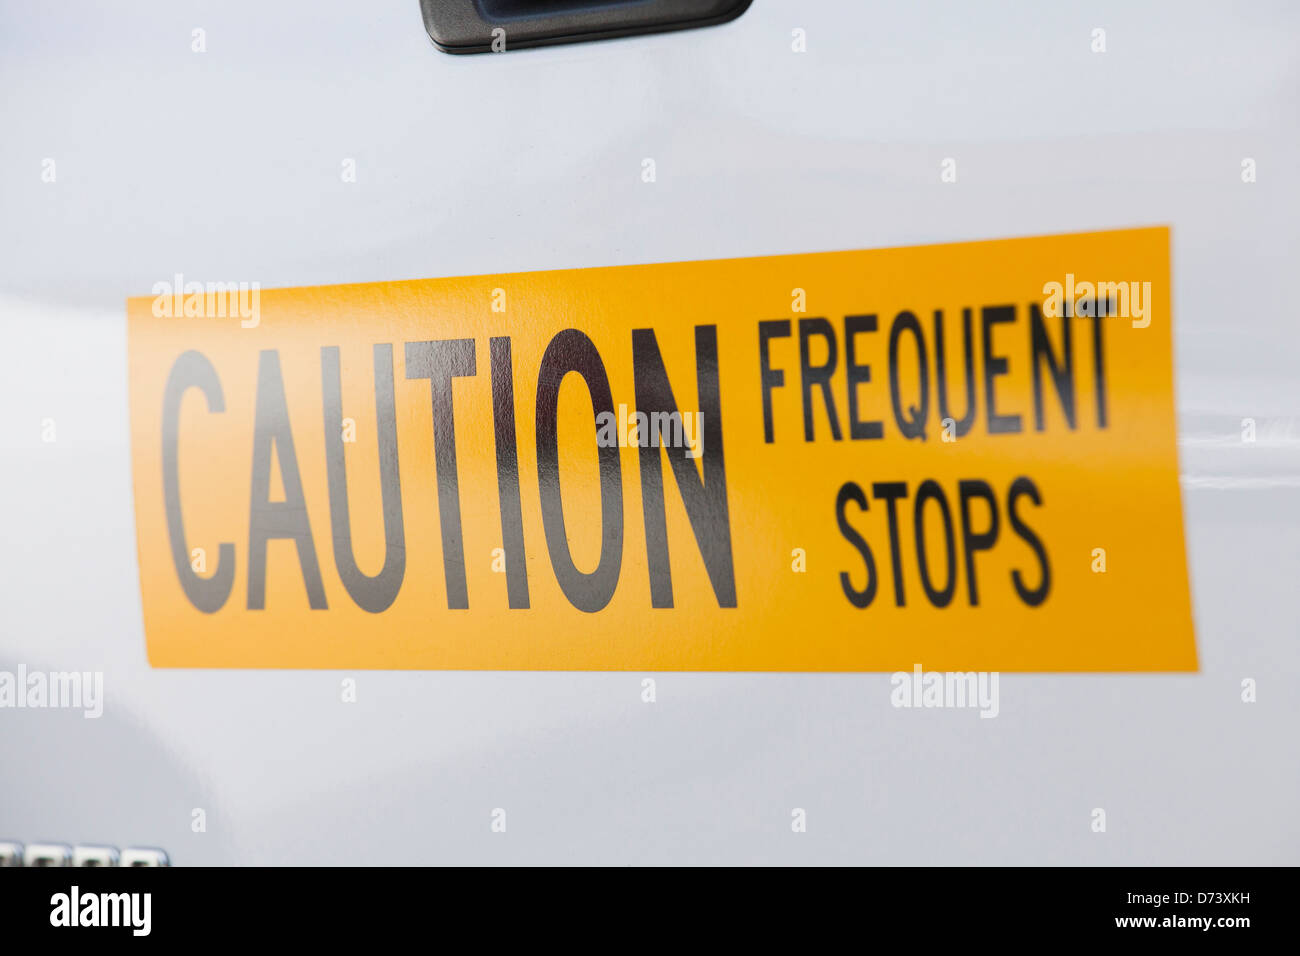 Frequent stop warning sign on back of truck - Stock Image